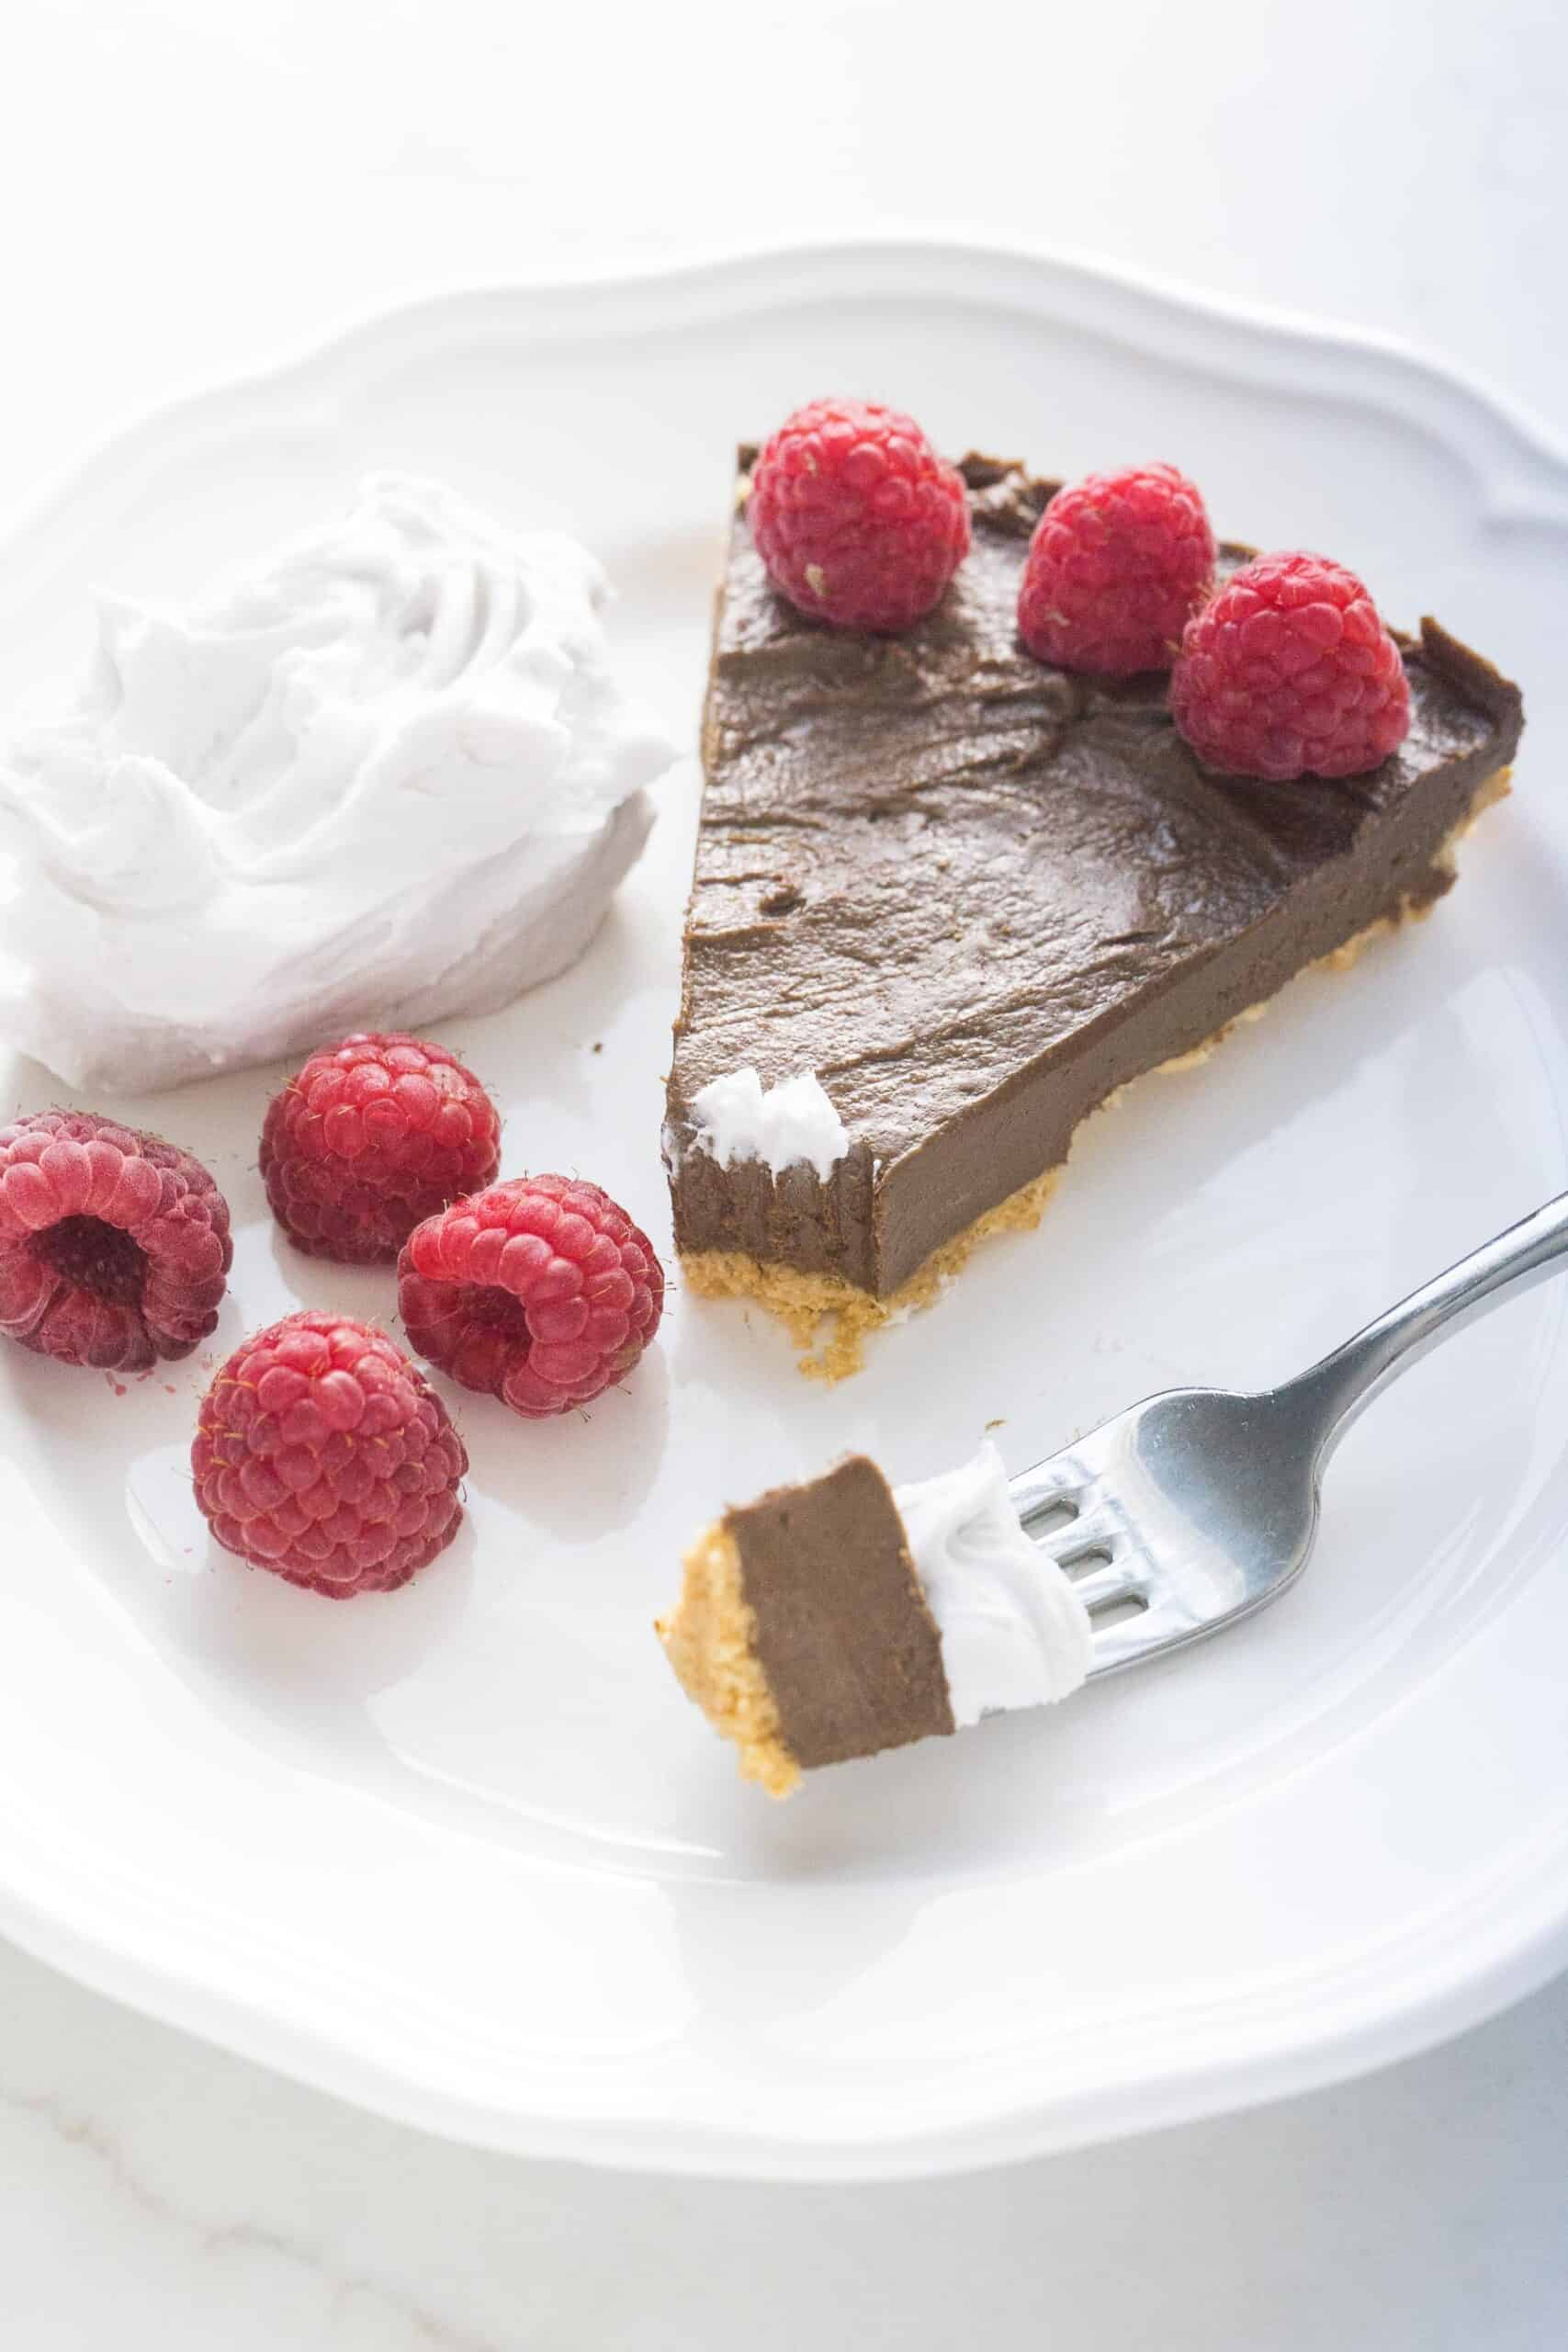 fork taking a bite out of healthy chocolate tart with raspberries and coconut whipped cream